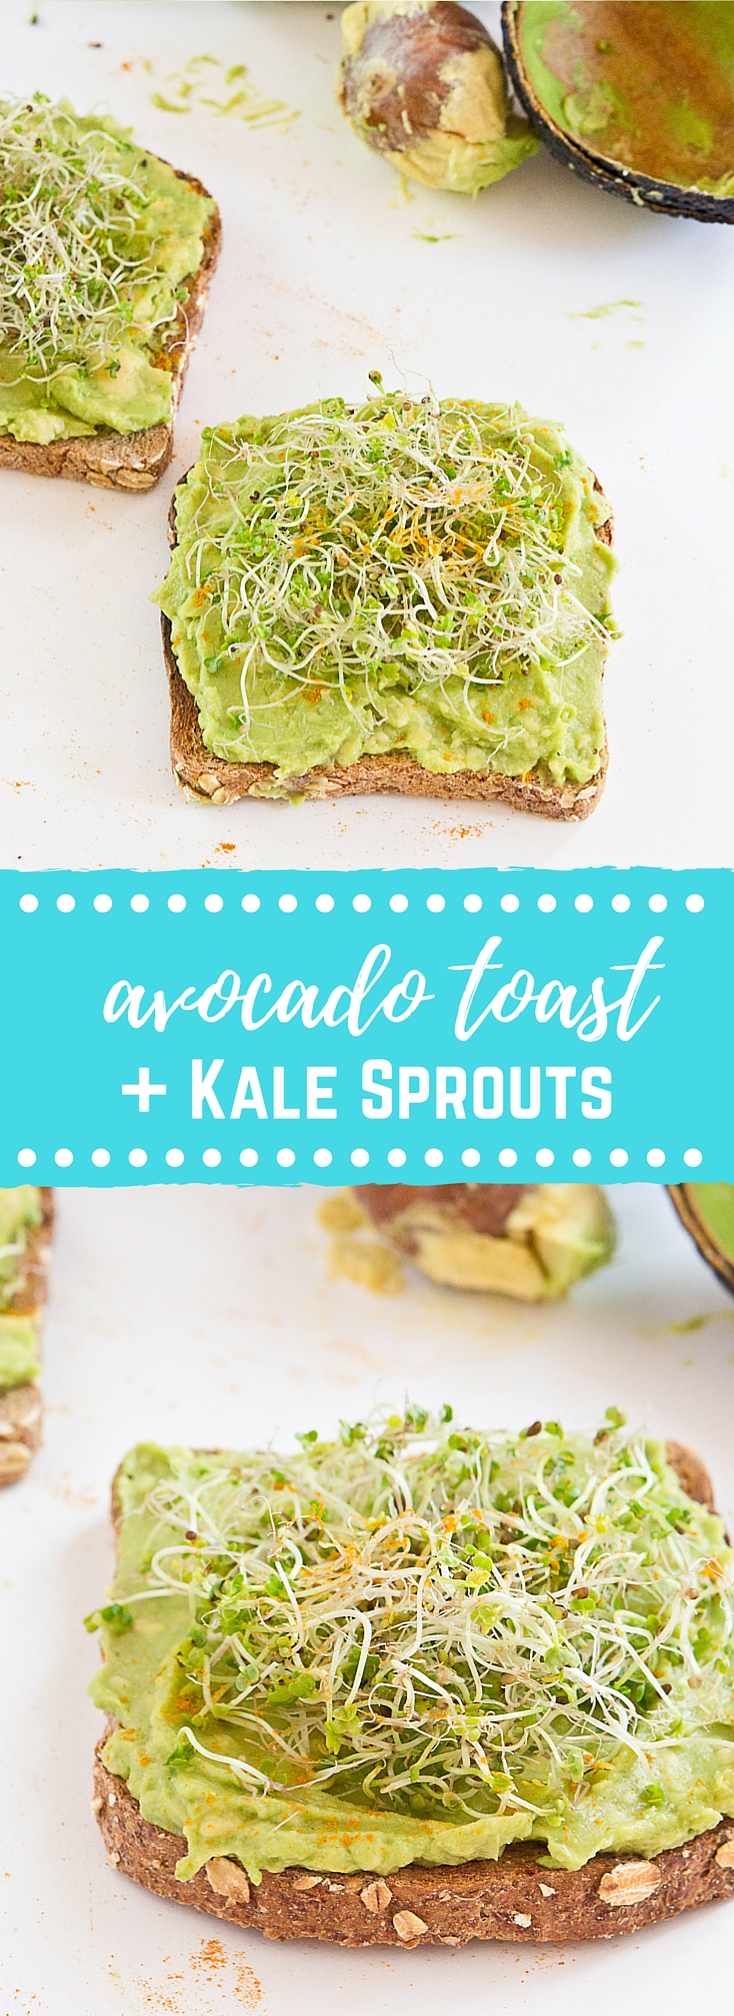 Start out your day with Avocado Toast with Kale Sprouts. This meal makes you feel good from the inside out! Serve with a big bowl of bitter greens to get even more veg into your diet.